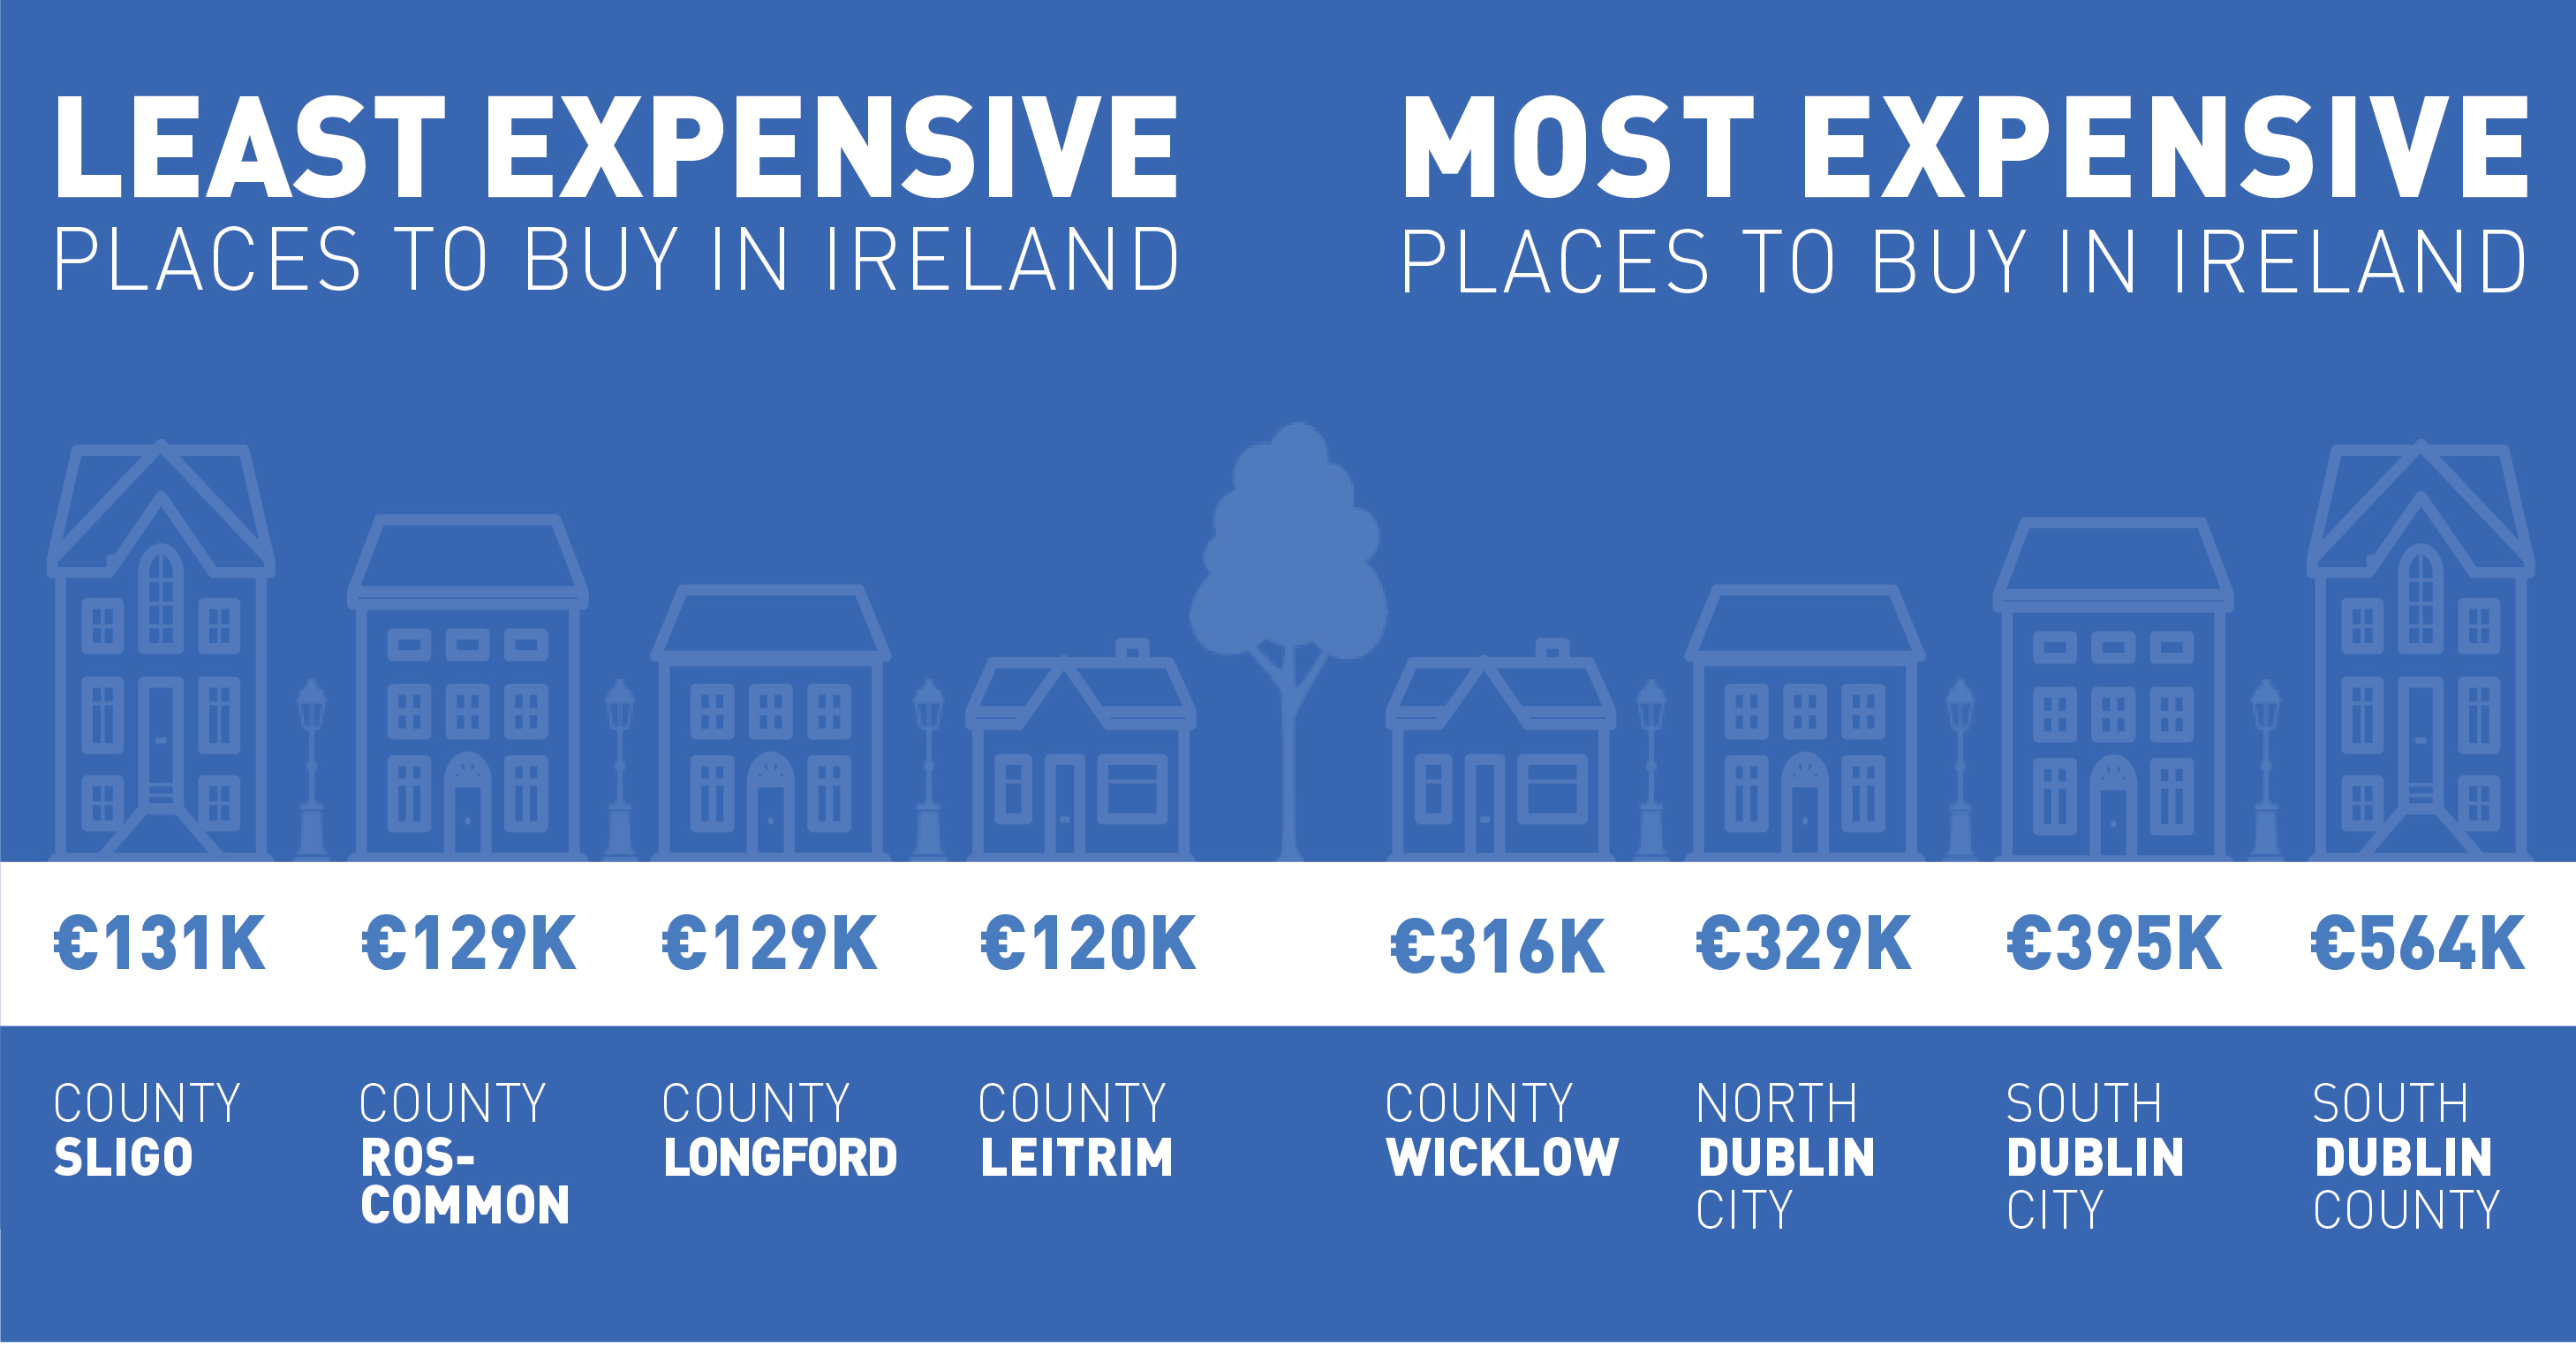 Least and most expensive places to buy in Ireland